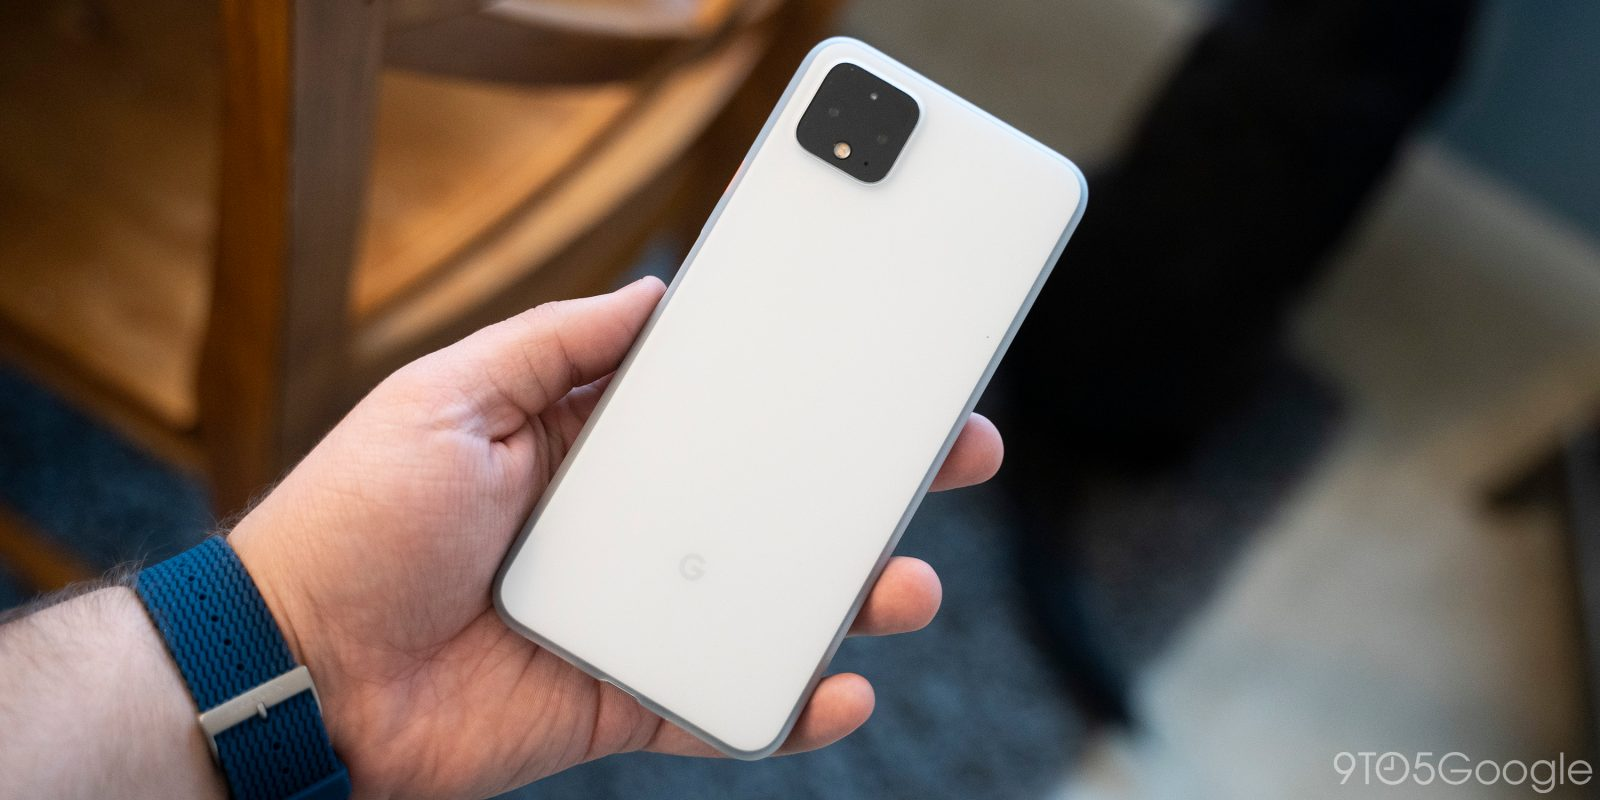 Review: Peel and Totallee offer identical super-thin Pixel 4 cases and screen protectors